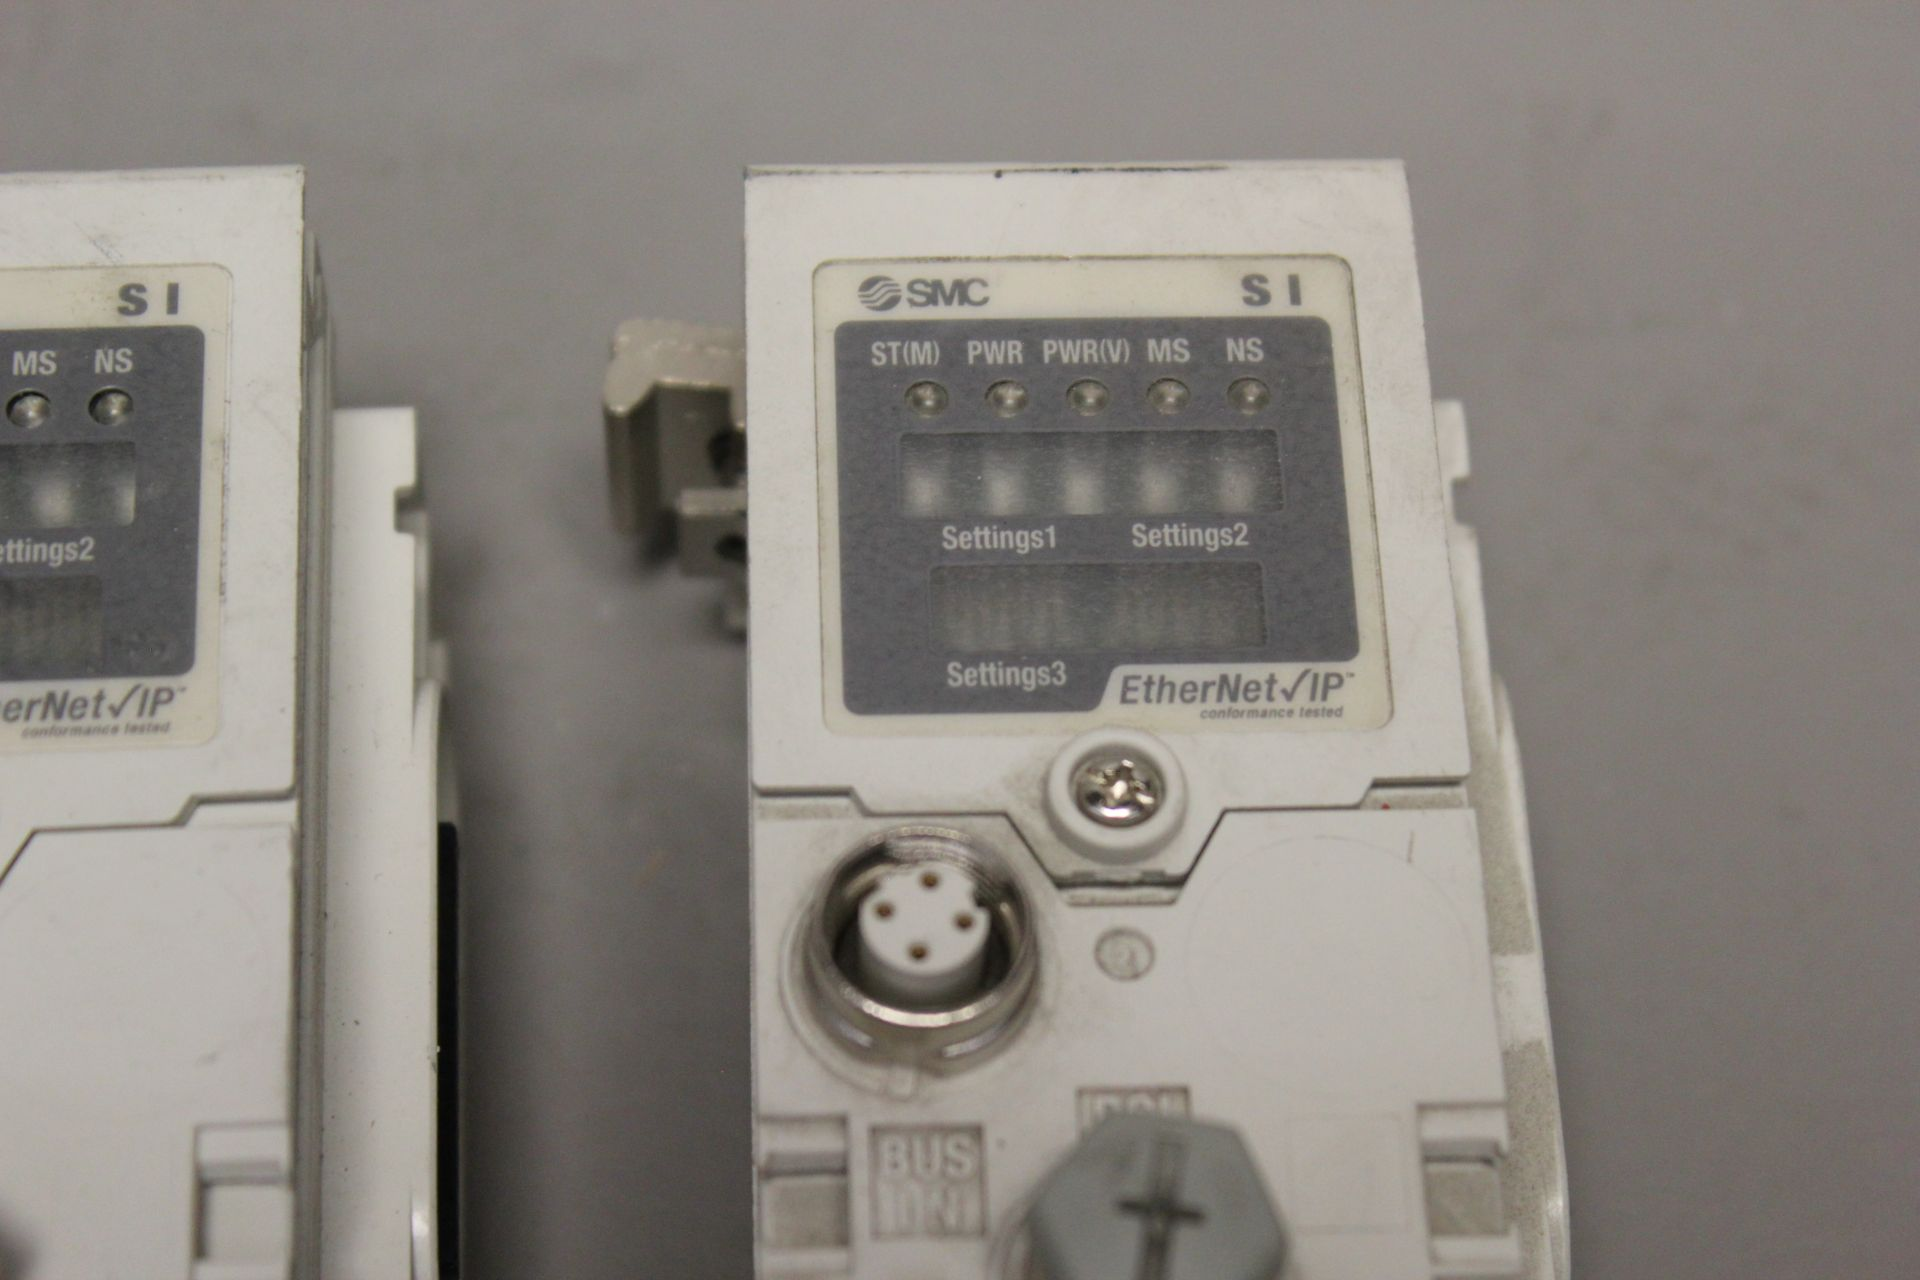 LOT OF SMC ETHERNET/IP MODULES - Image 2 of 3